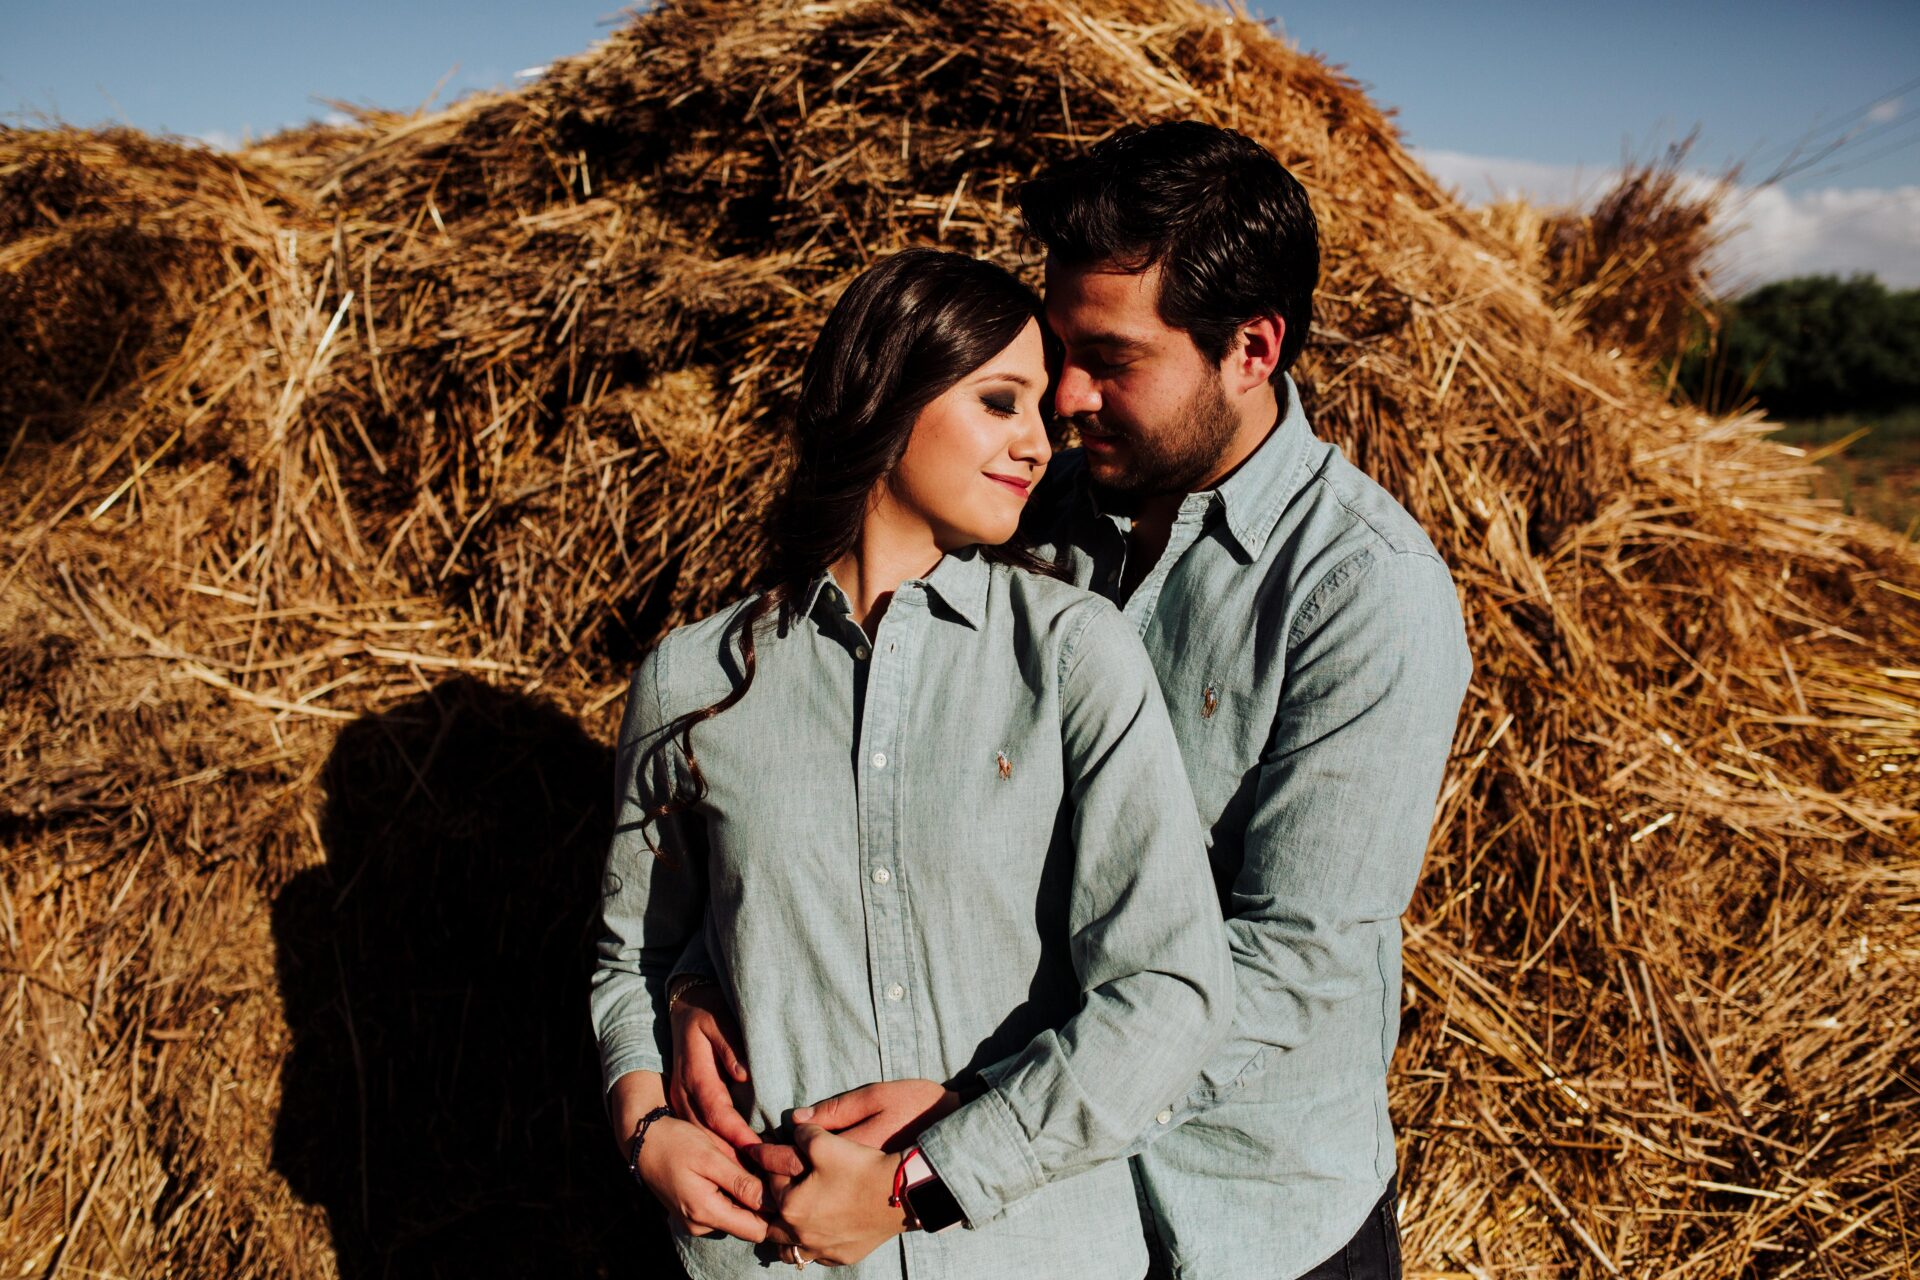 javier_noriega_fotografo_save_the_date_zacatecas_wedding_photographer8